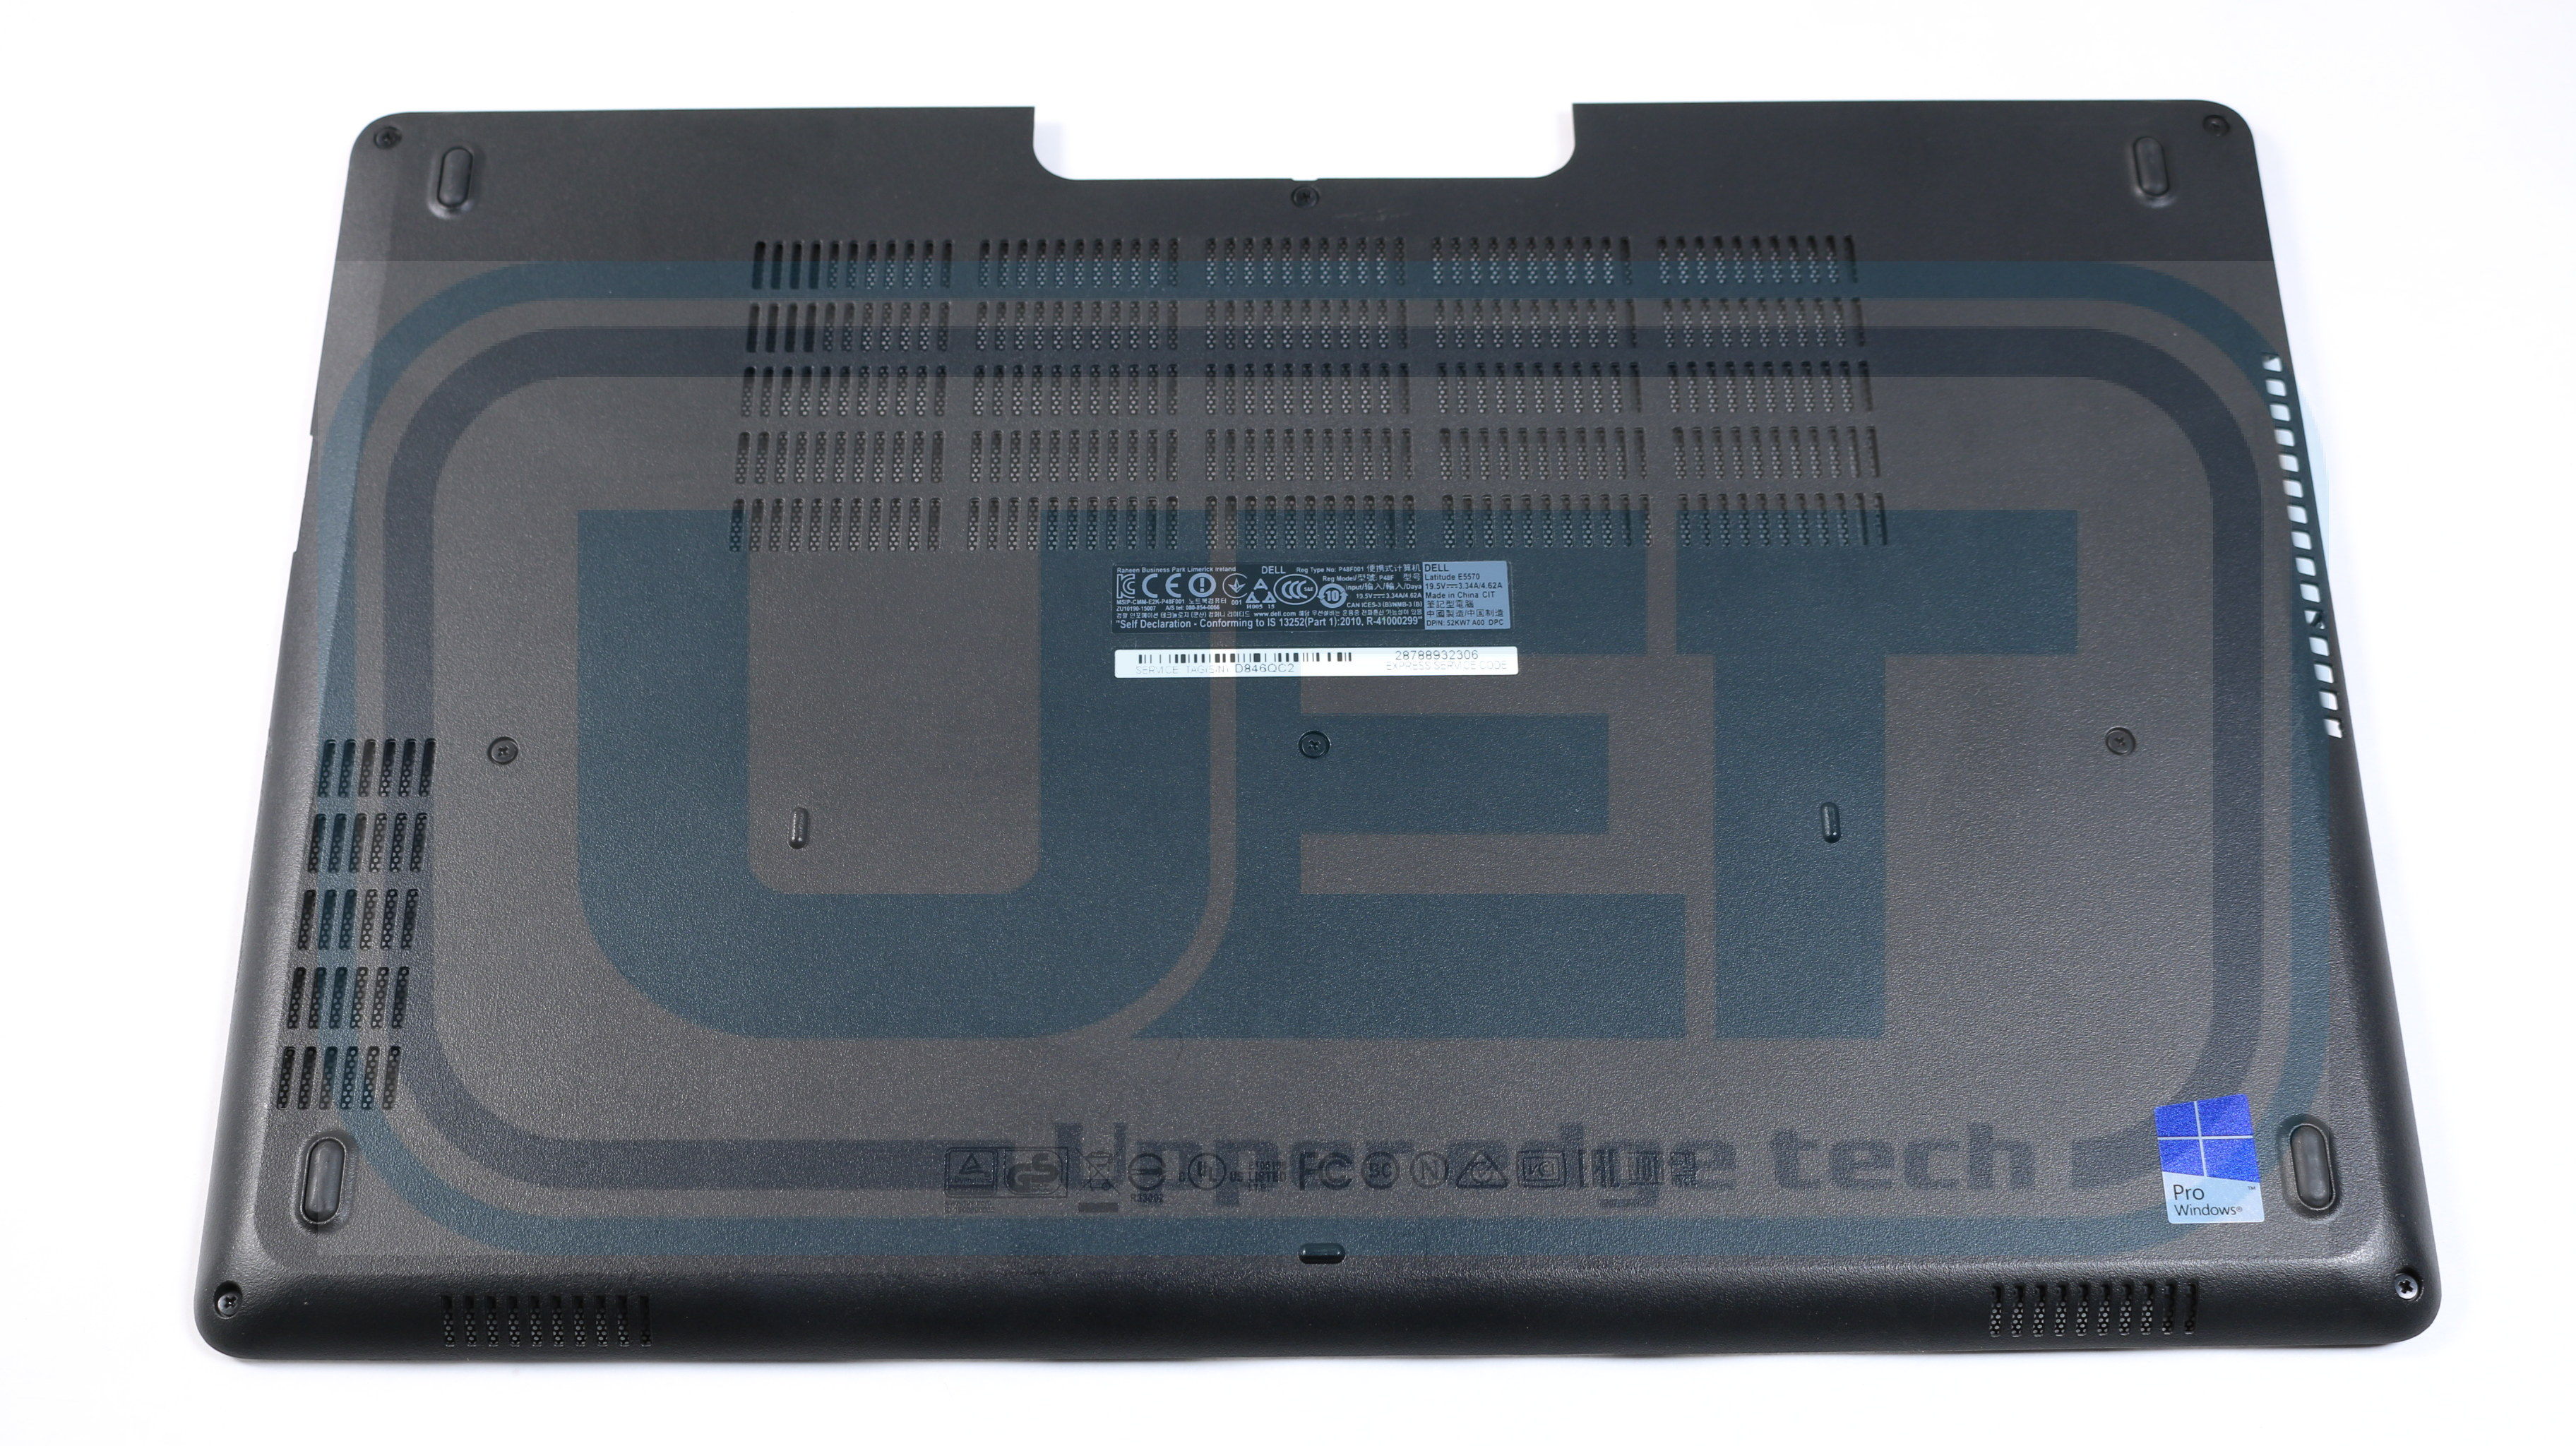 Details about Dell Latitude E5570 Laptop Base Bottom Case 7PVX3 Grade B  Tested Warranty